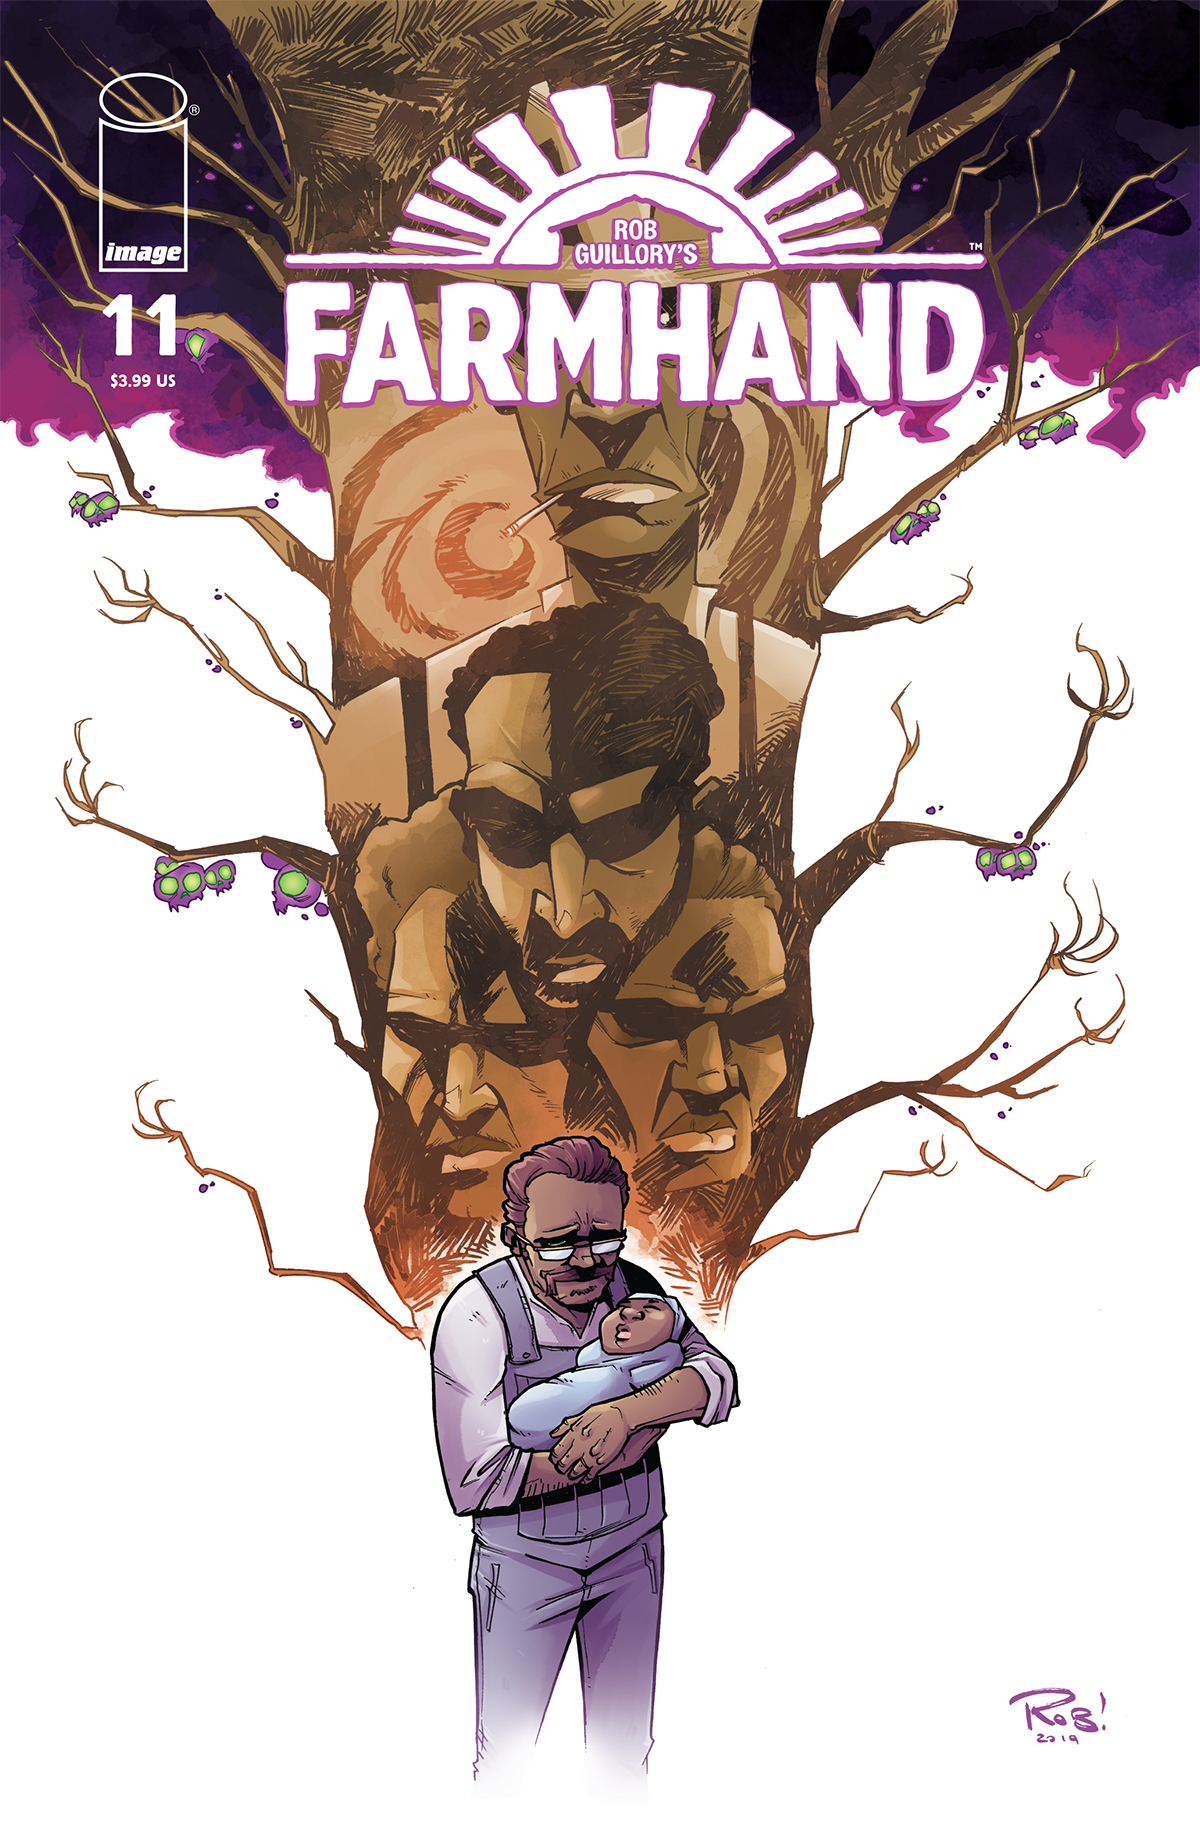 FARMHAND #11 (MR)